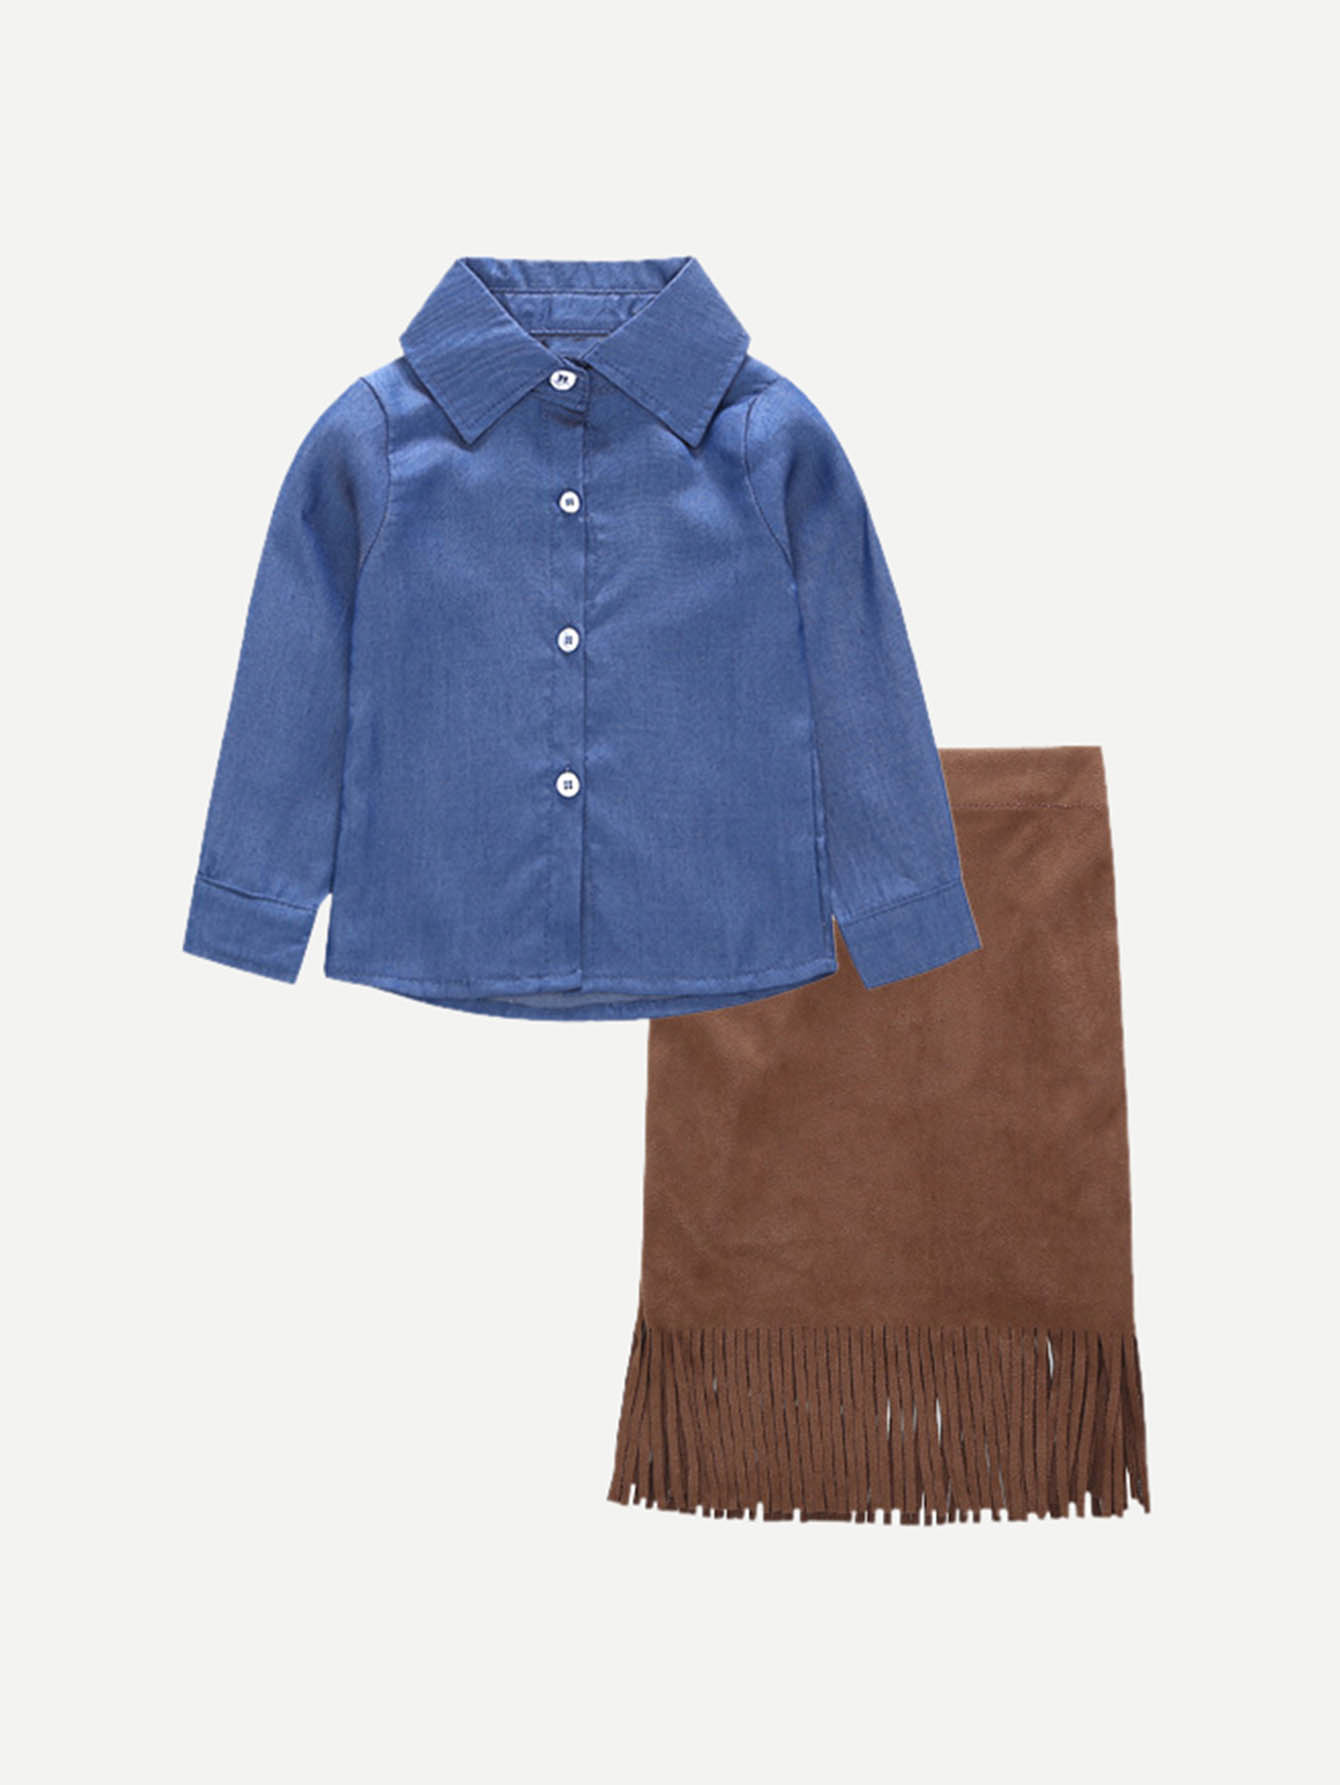 Girls Solid Blouse With Fringe Hem Skirt d link dcs 700l a1a